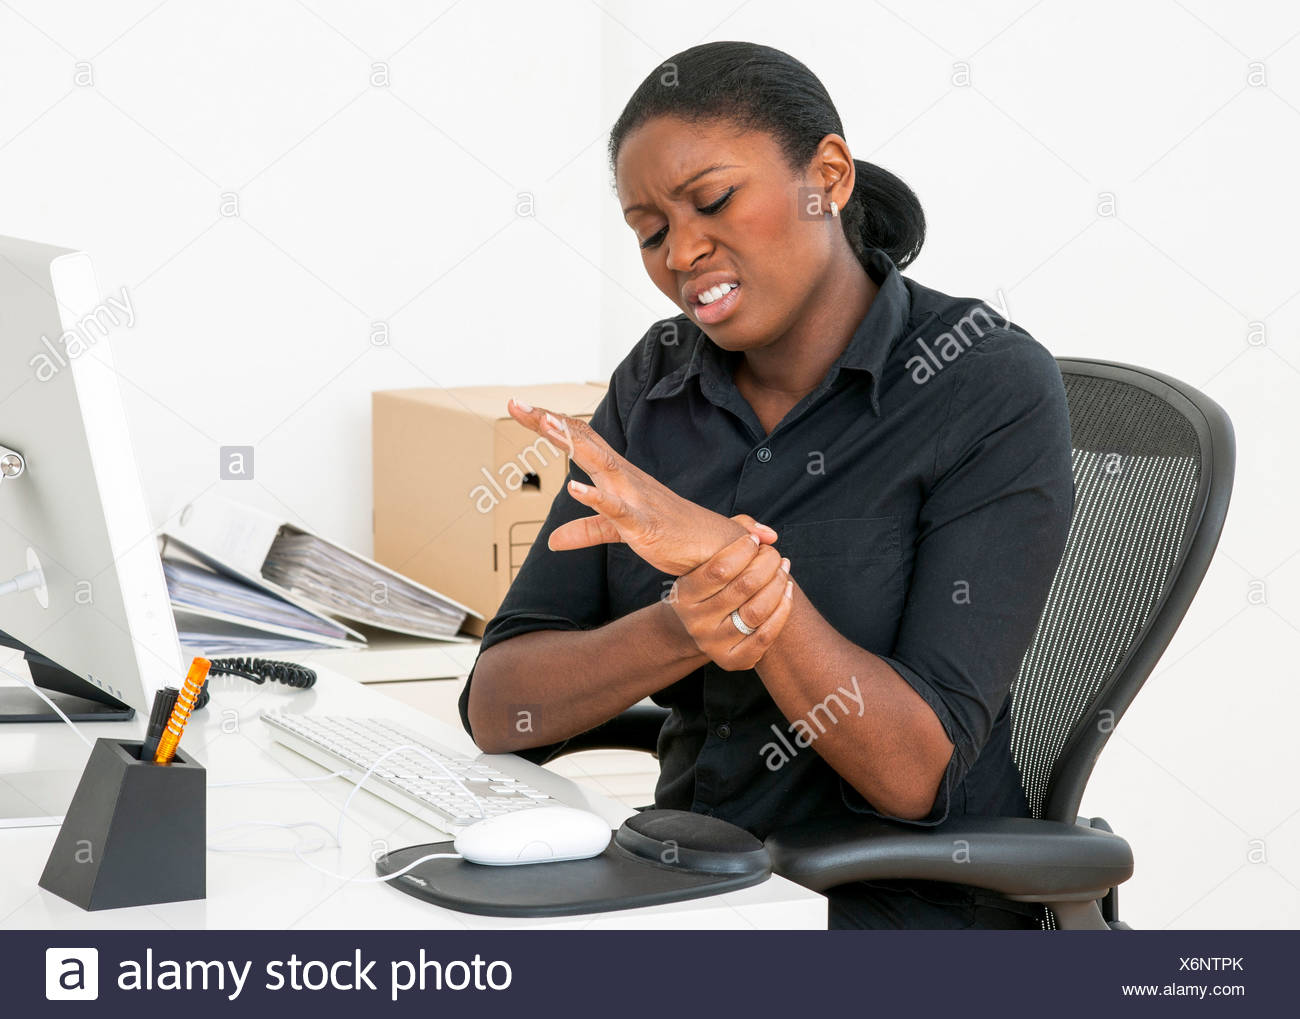 MODEL RELEASED Repetitive strain injury RSI - Stock Image